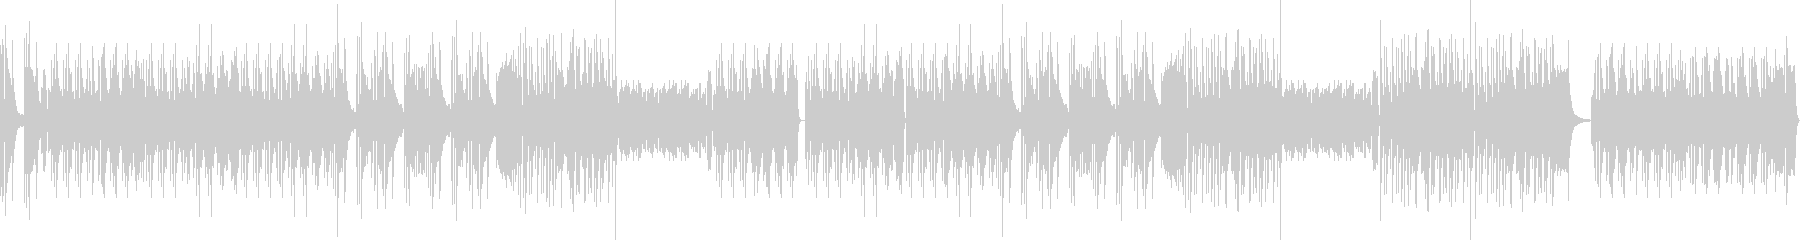 Piano solo full of exhilaration's unreproduced waveform